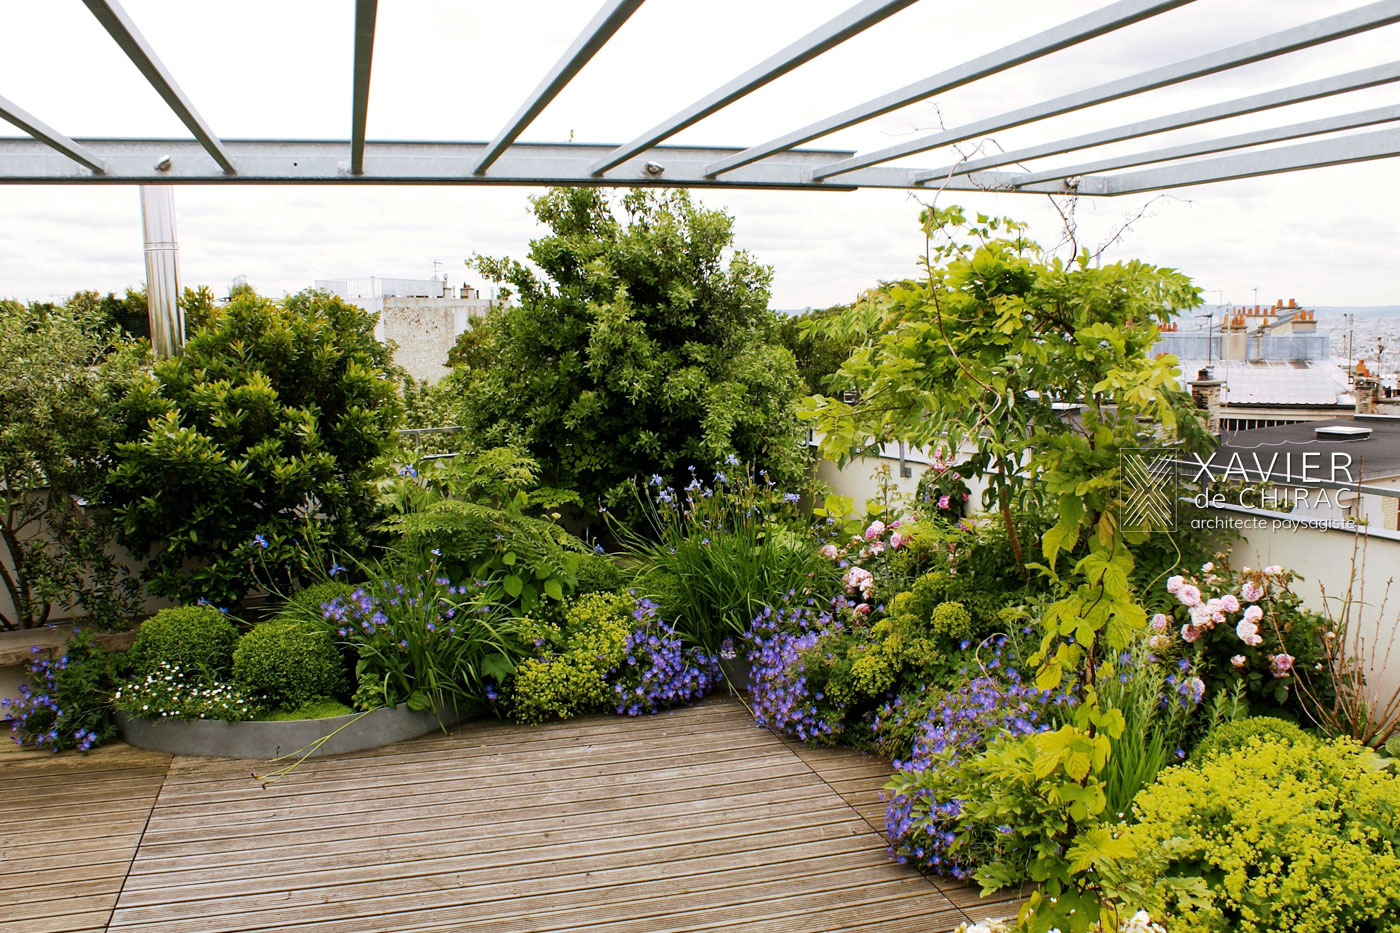 terrasse poème bohème Paris New York terrace garden with flowers Xavier de Chirac